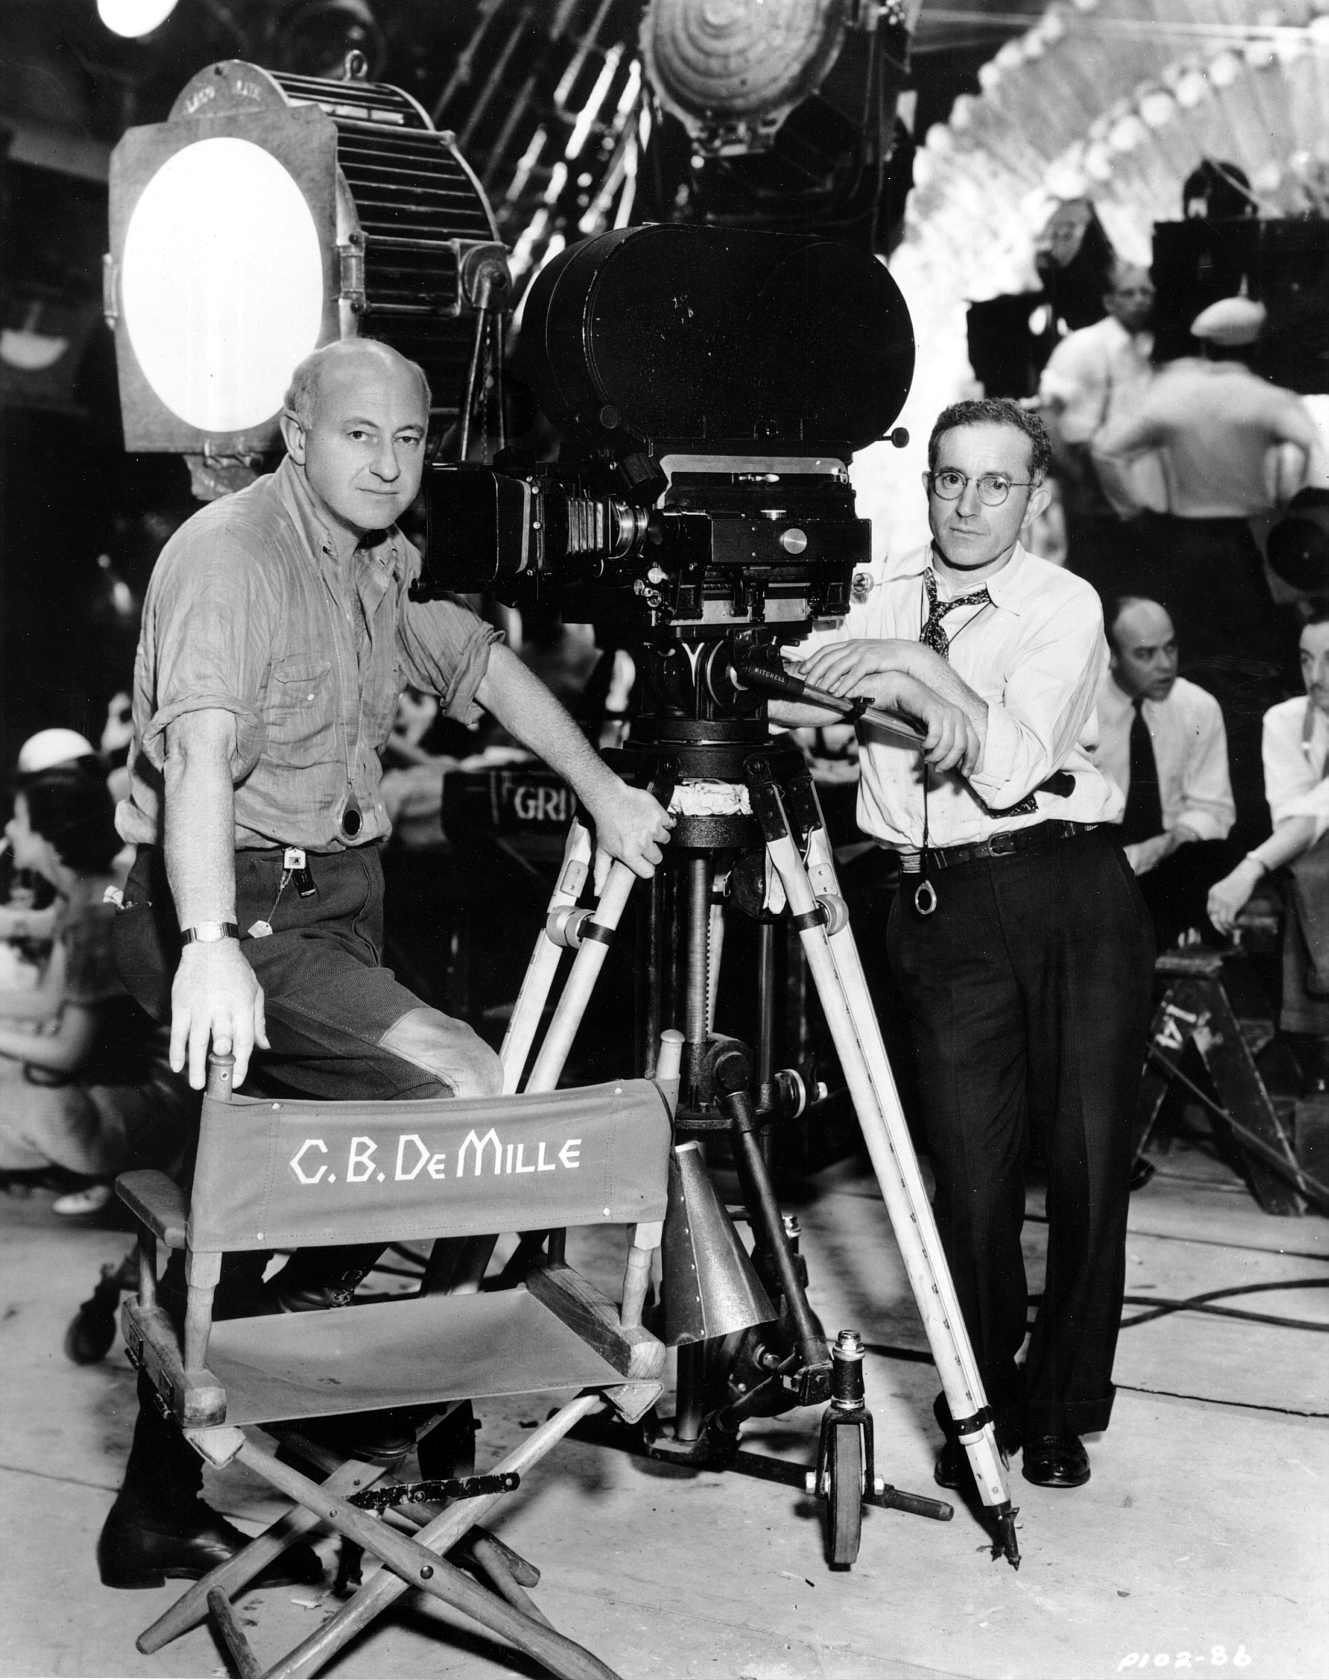 ASC Founders - The American Society of Cinematographers